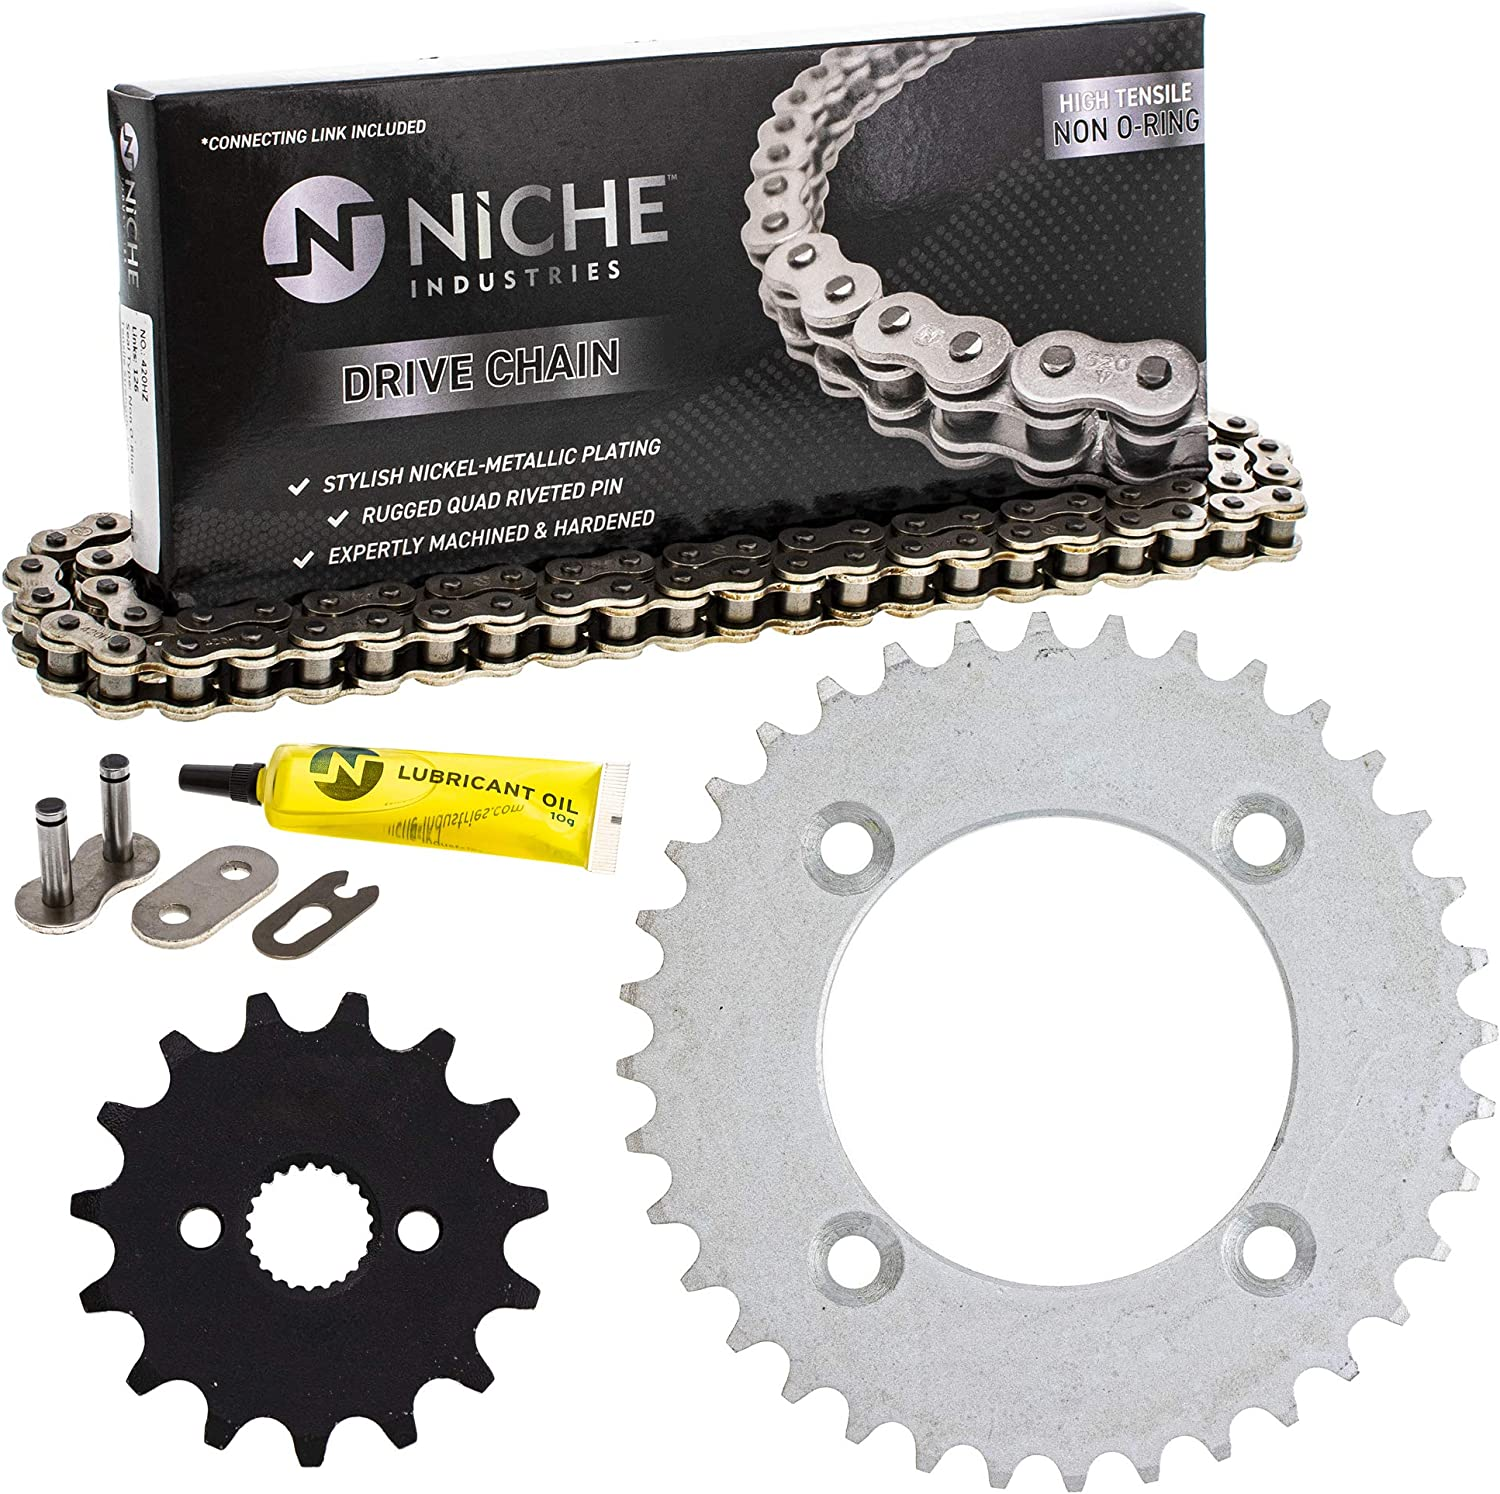 NICHE Drive Sprocket Manufacturer regenerated product Chain Combo 4 years warranty for Front XR70R CRF70 Honda 15